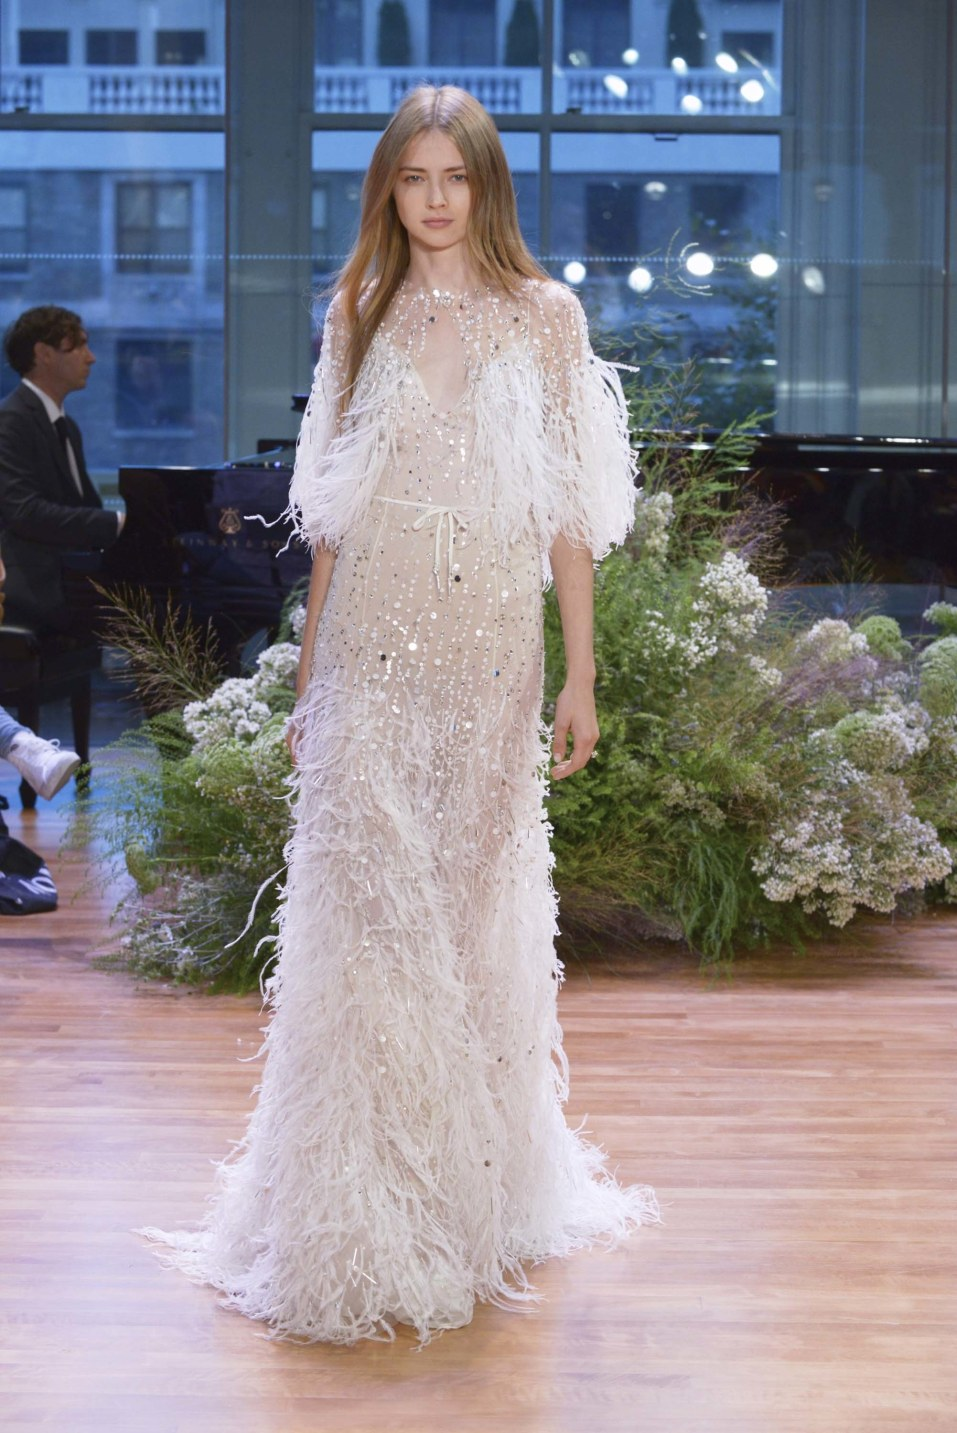 Monique Lhuillier Bridal Fall 2017 Courtesy of Vogue